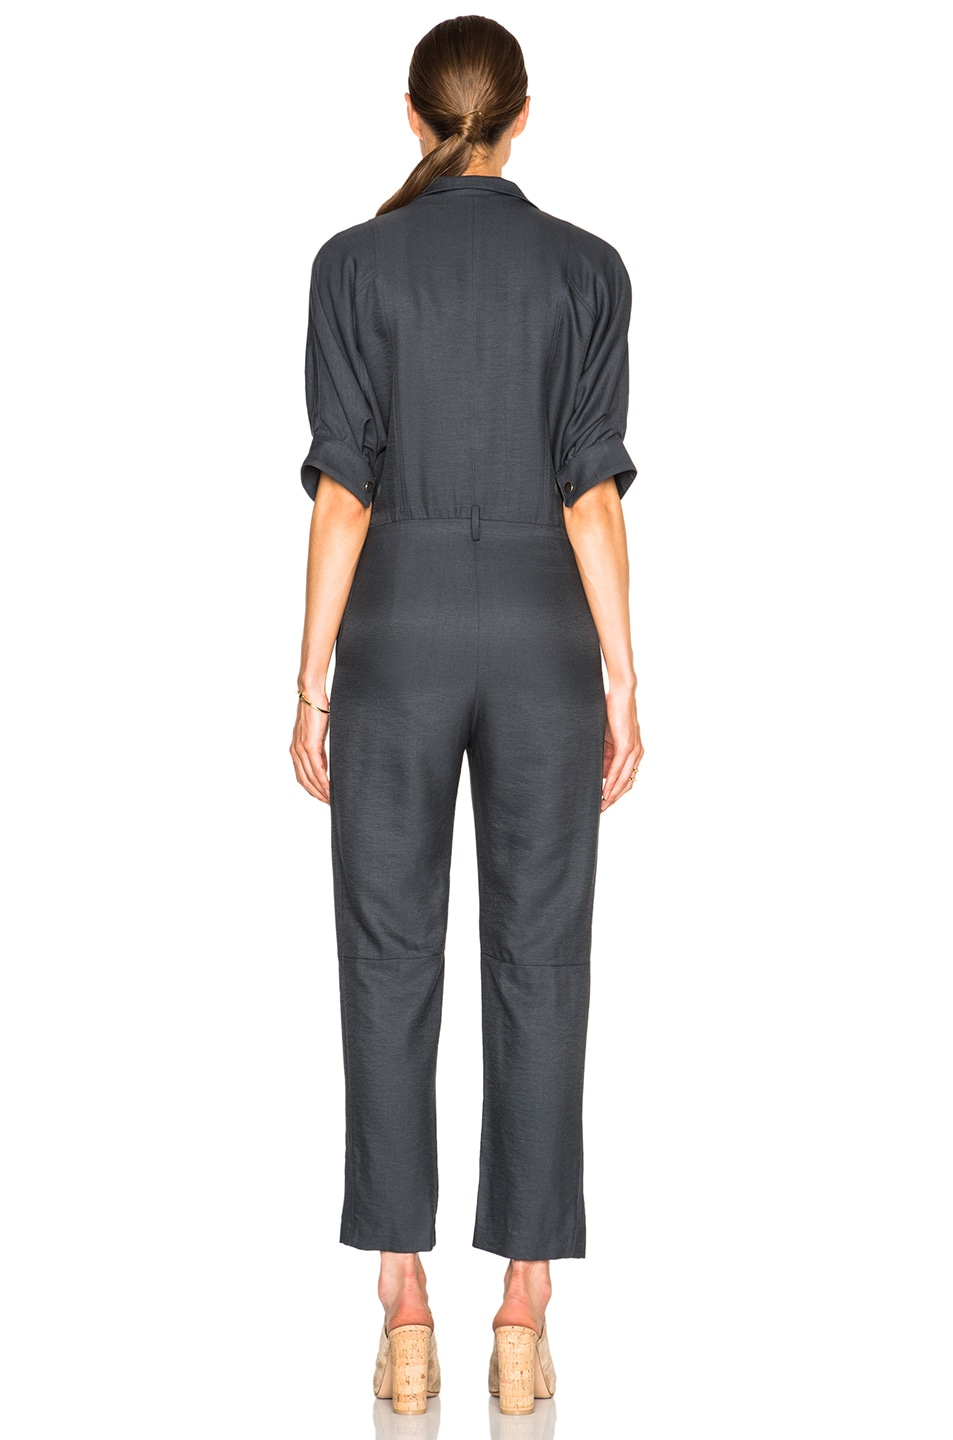 Image 4 of Carolina Ritz Charles 85 Jumpsuit in Blue